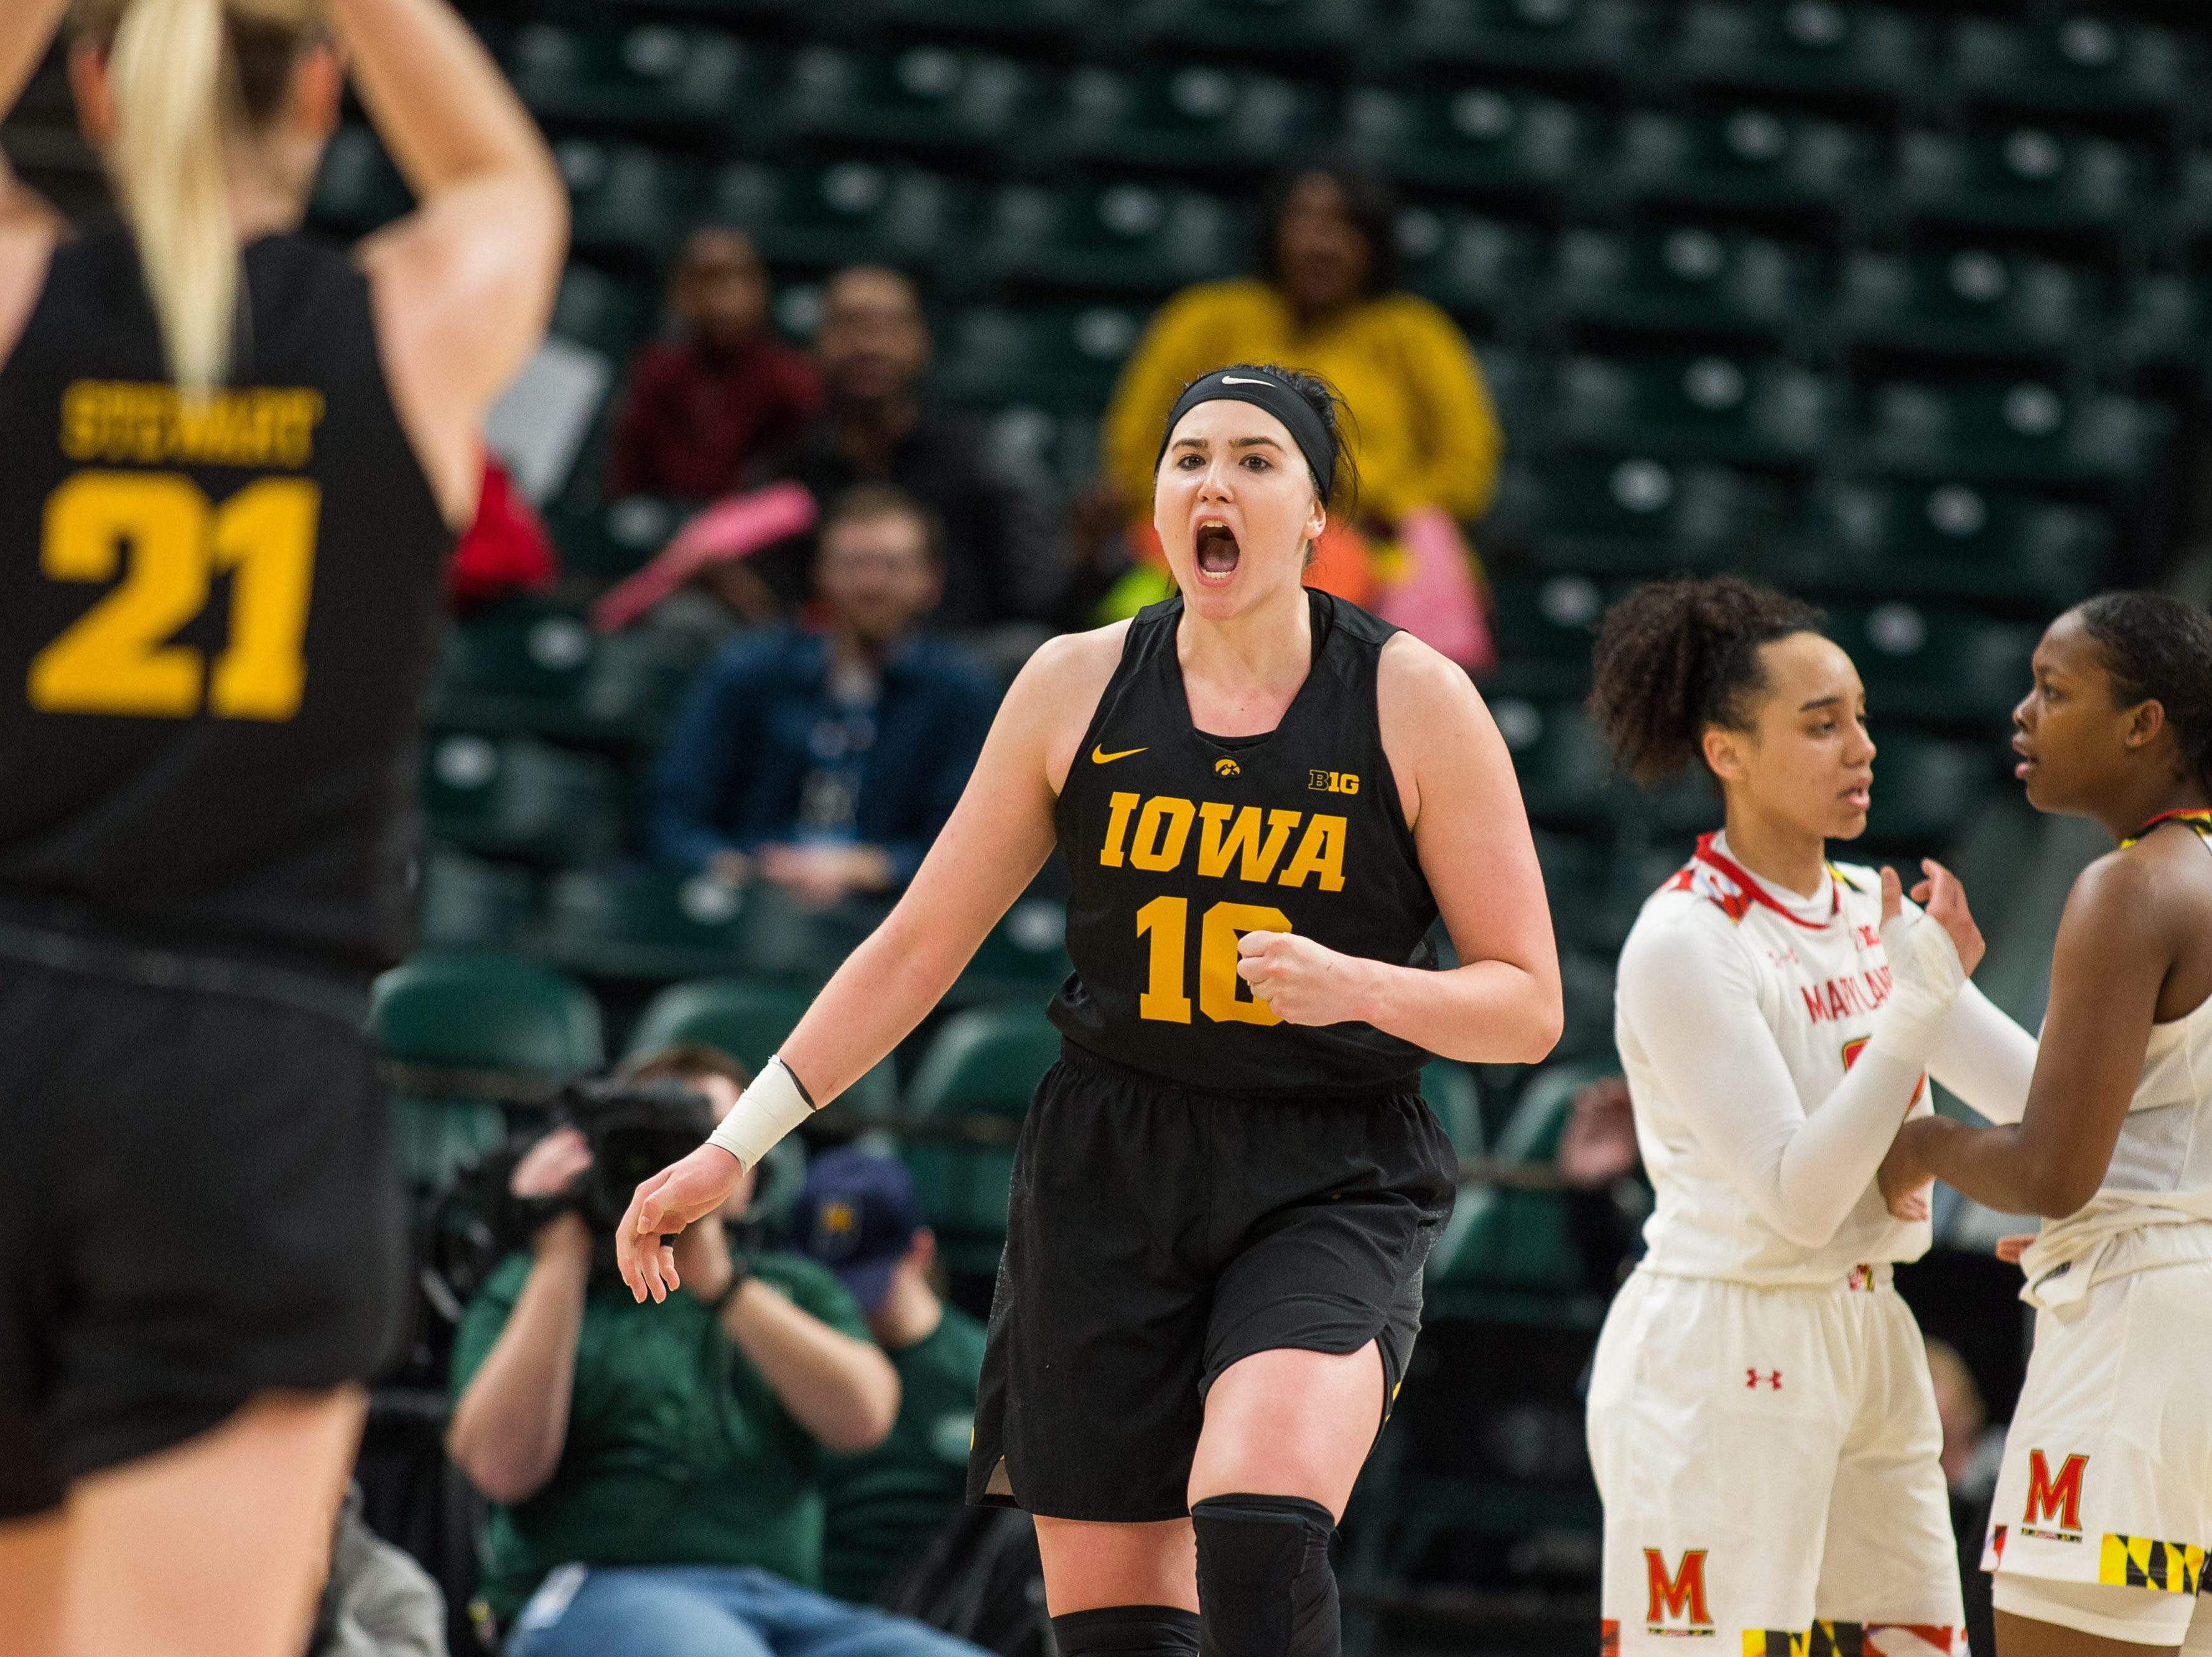 Iowa Hawkeyes forward Megan Gustafson (10) reacts to an and one play in the first half against the Maryland Terrapins in the women's Big Ten Conference Tournament at Bankers Life Fieldhouse.